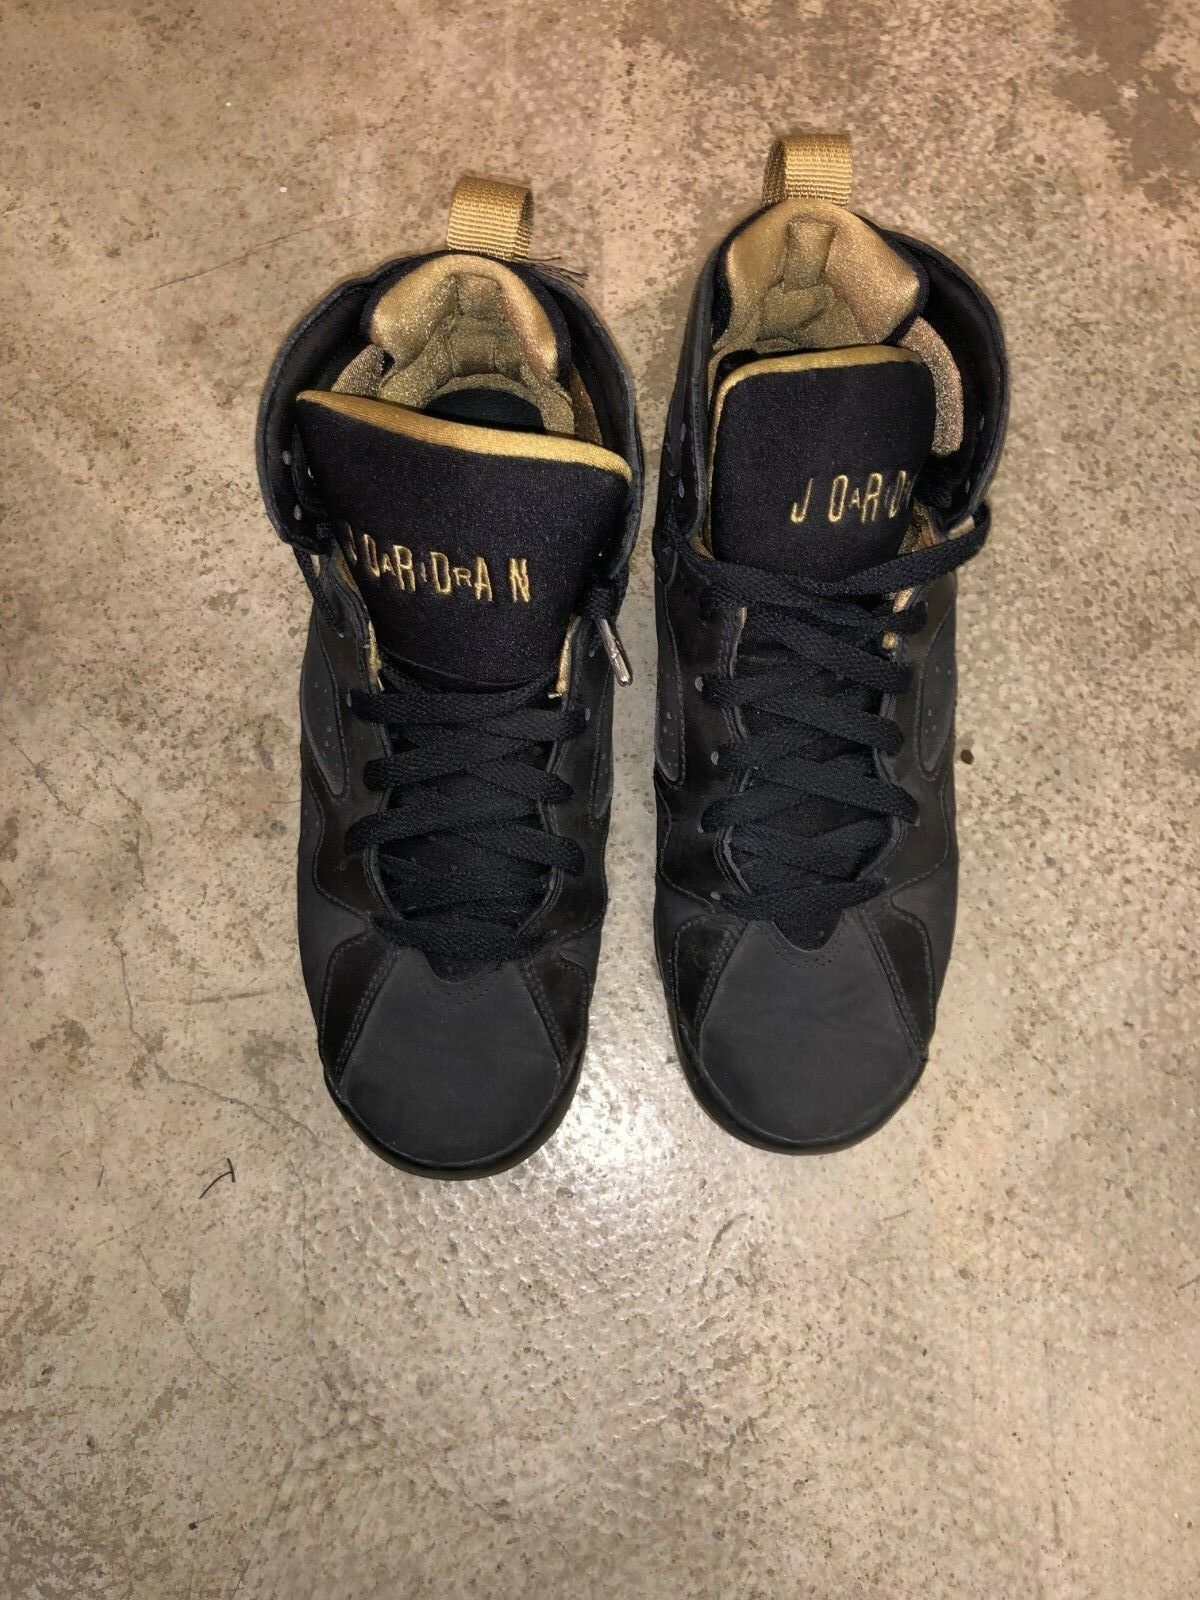 Nike Air Jordan Jordan Jordan 7's golden Moments UK5.5 cbc7ca